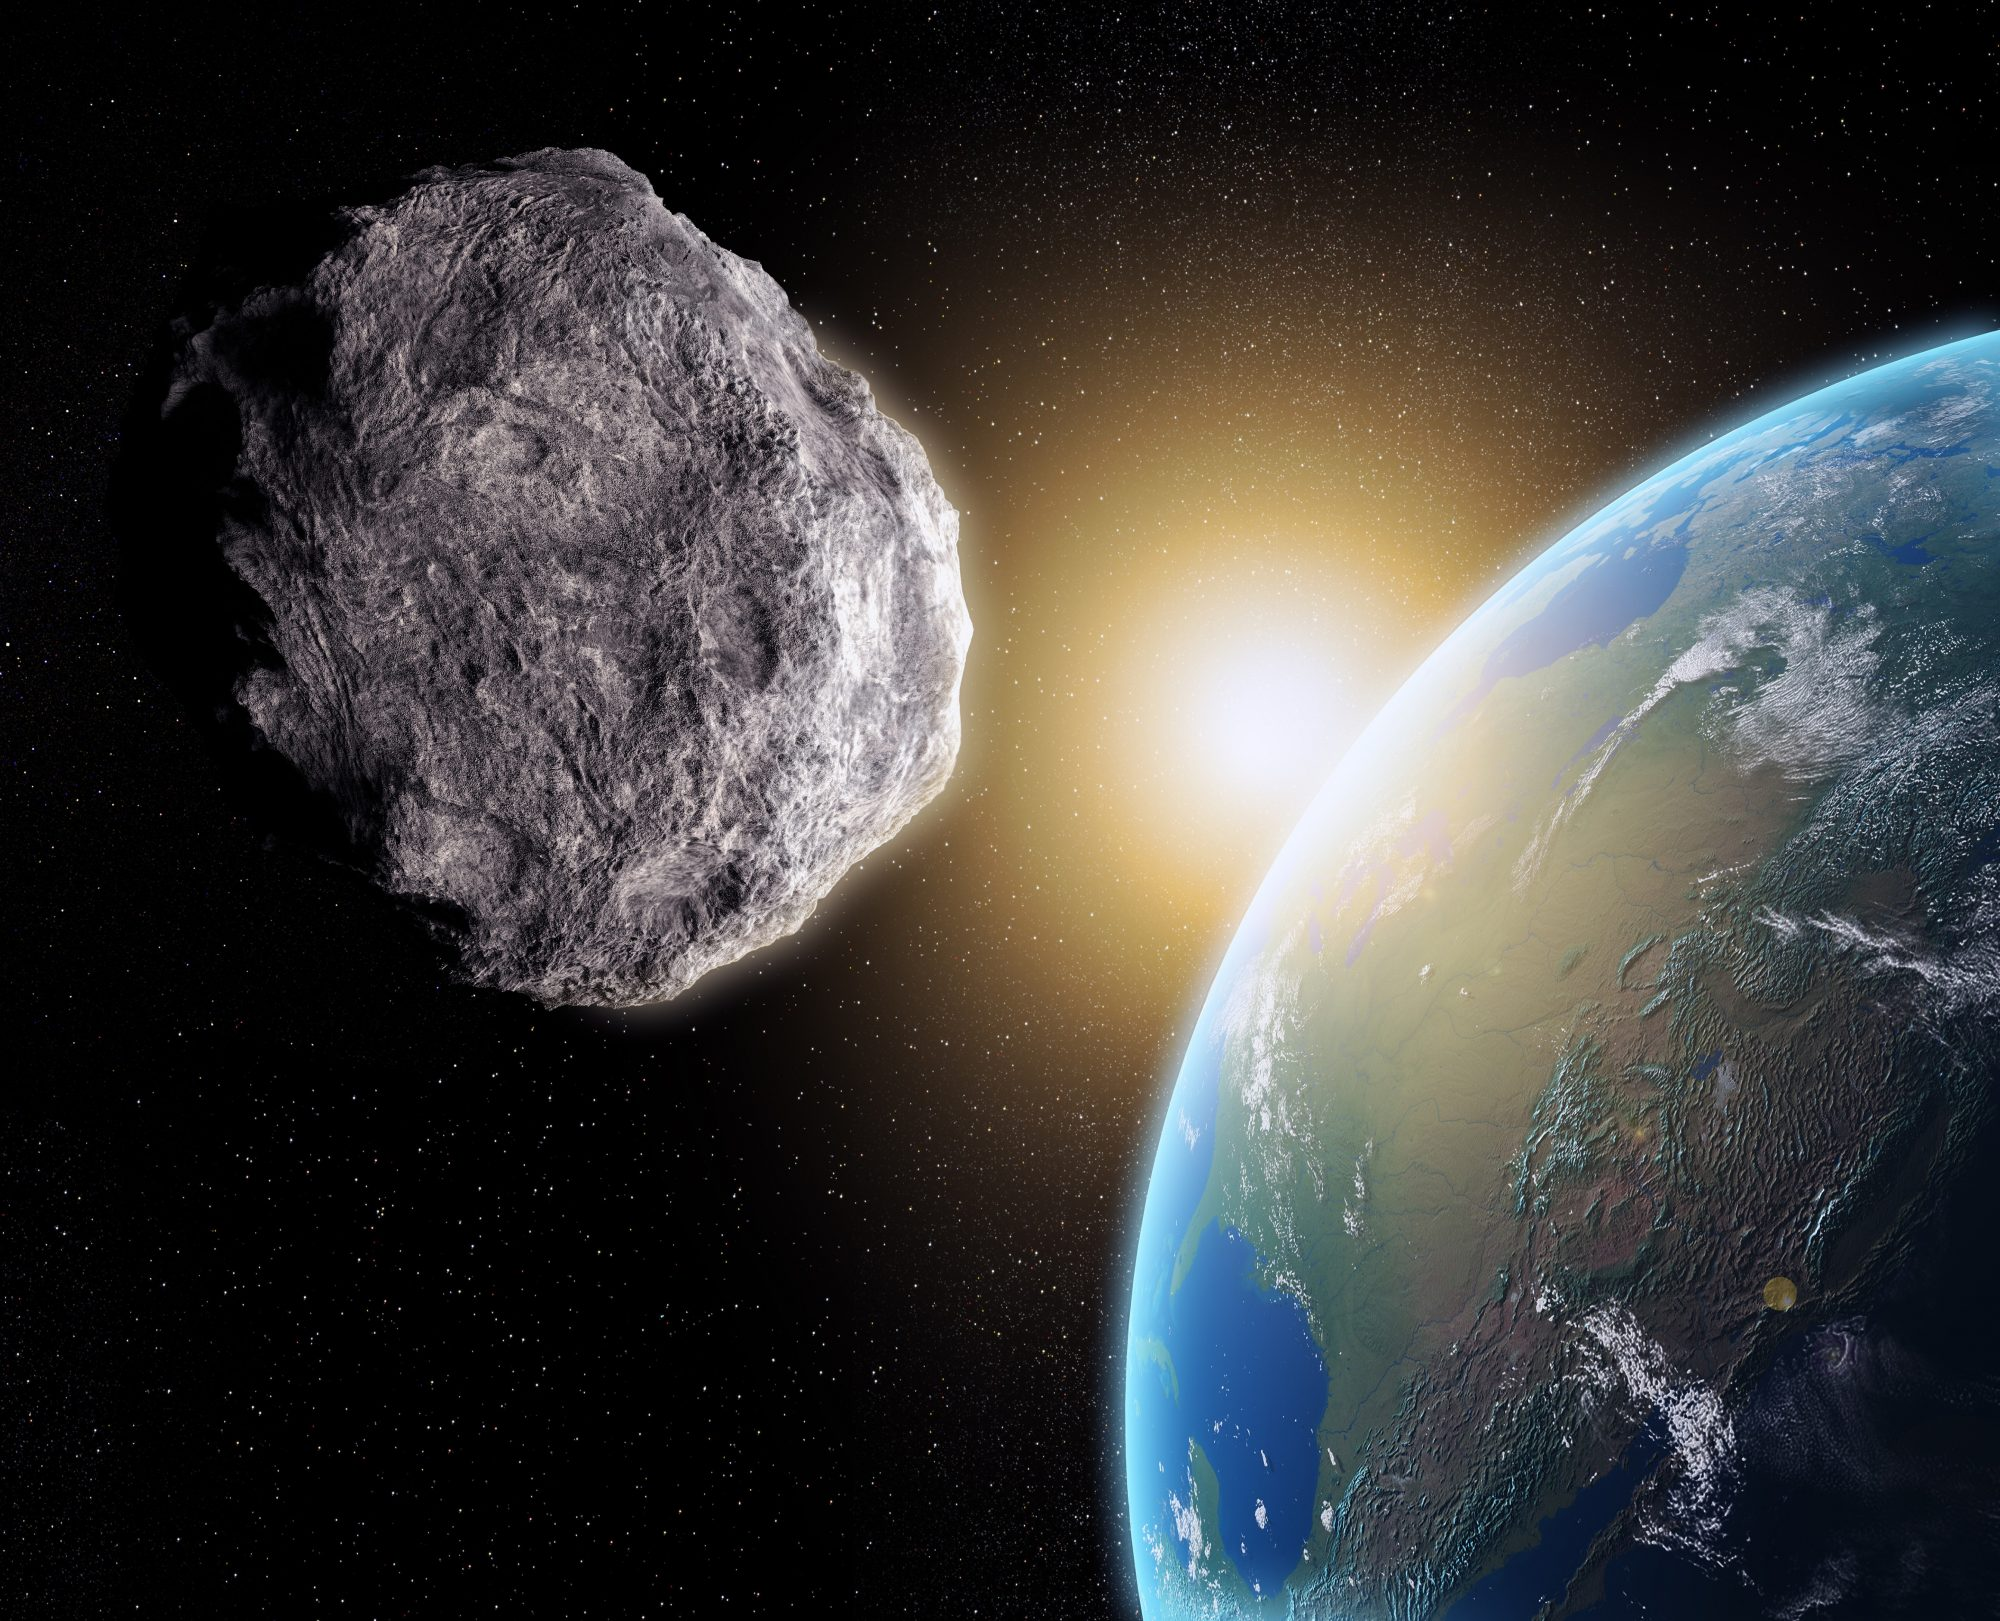 An asteroid approaching Earth